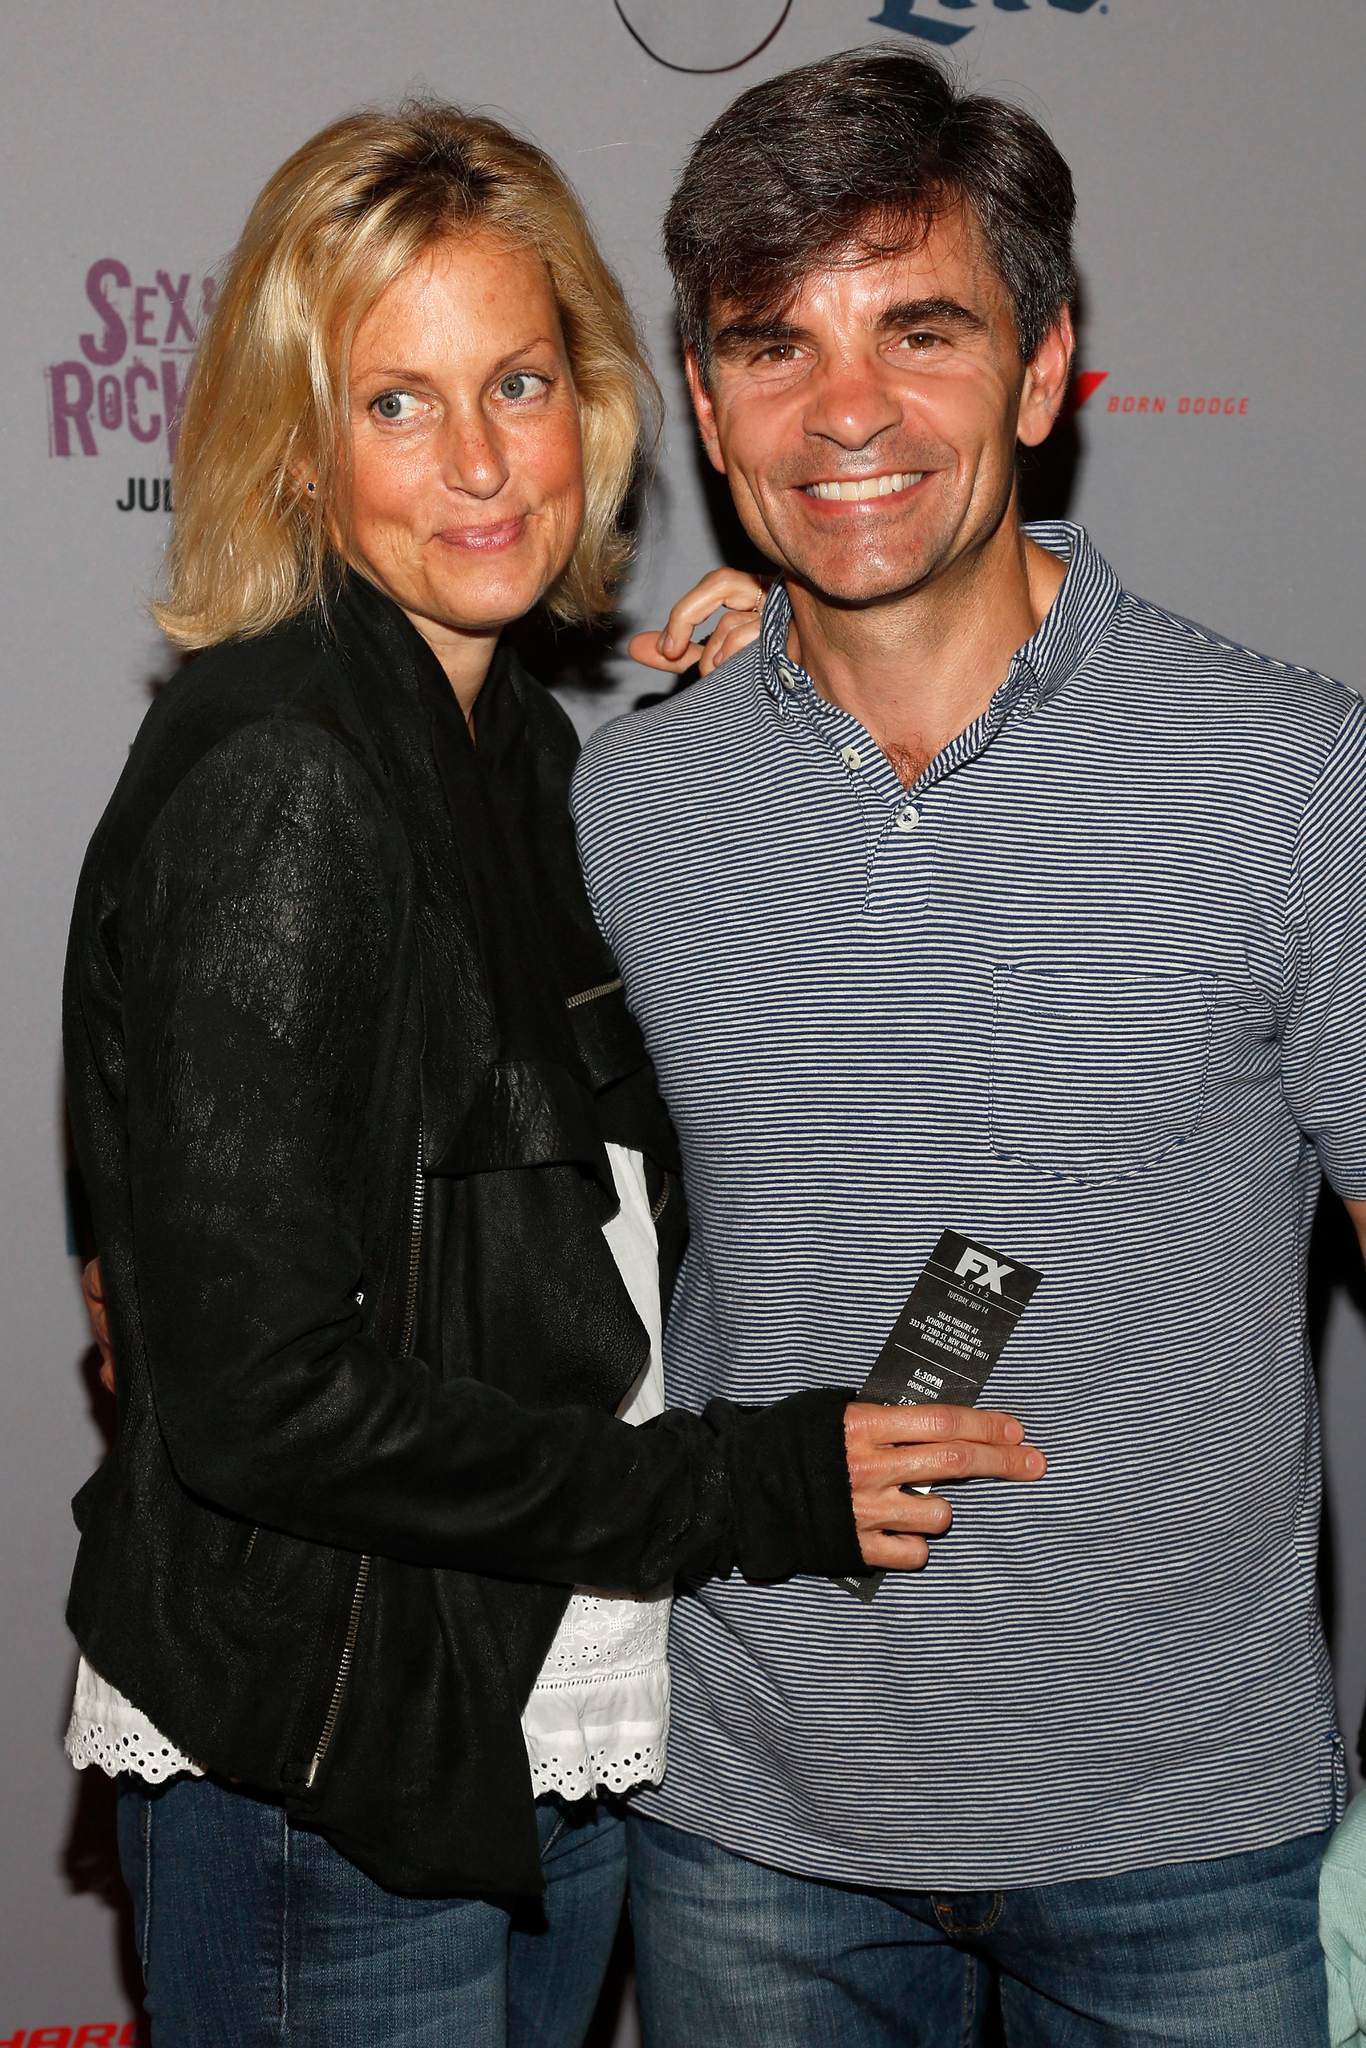 Alexandra Wentworth and George Stephanopoulos at an event for Sex & Drugs & Rock & Roll (2015)